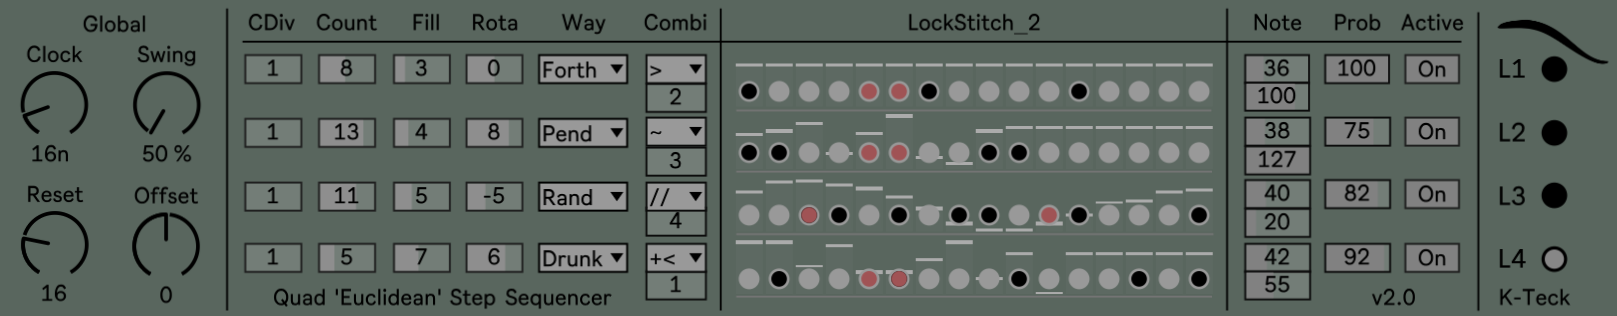 LockStitch 2: Quad 'Euclidean' Sequencer